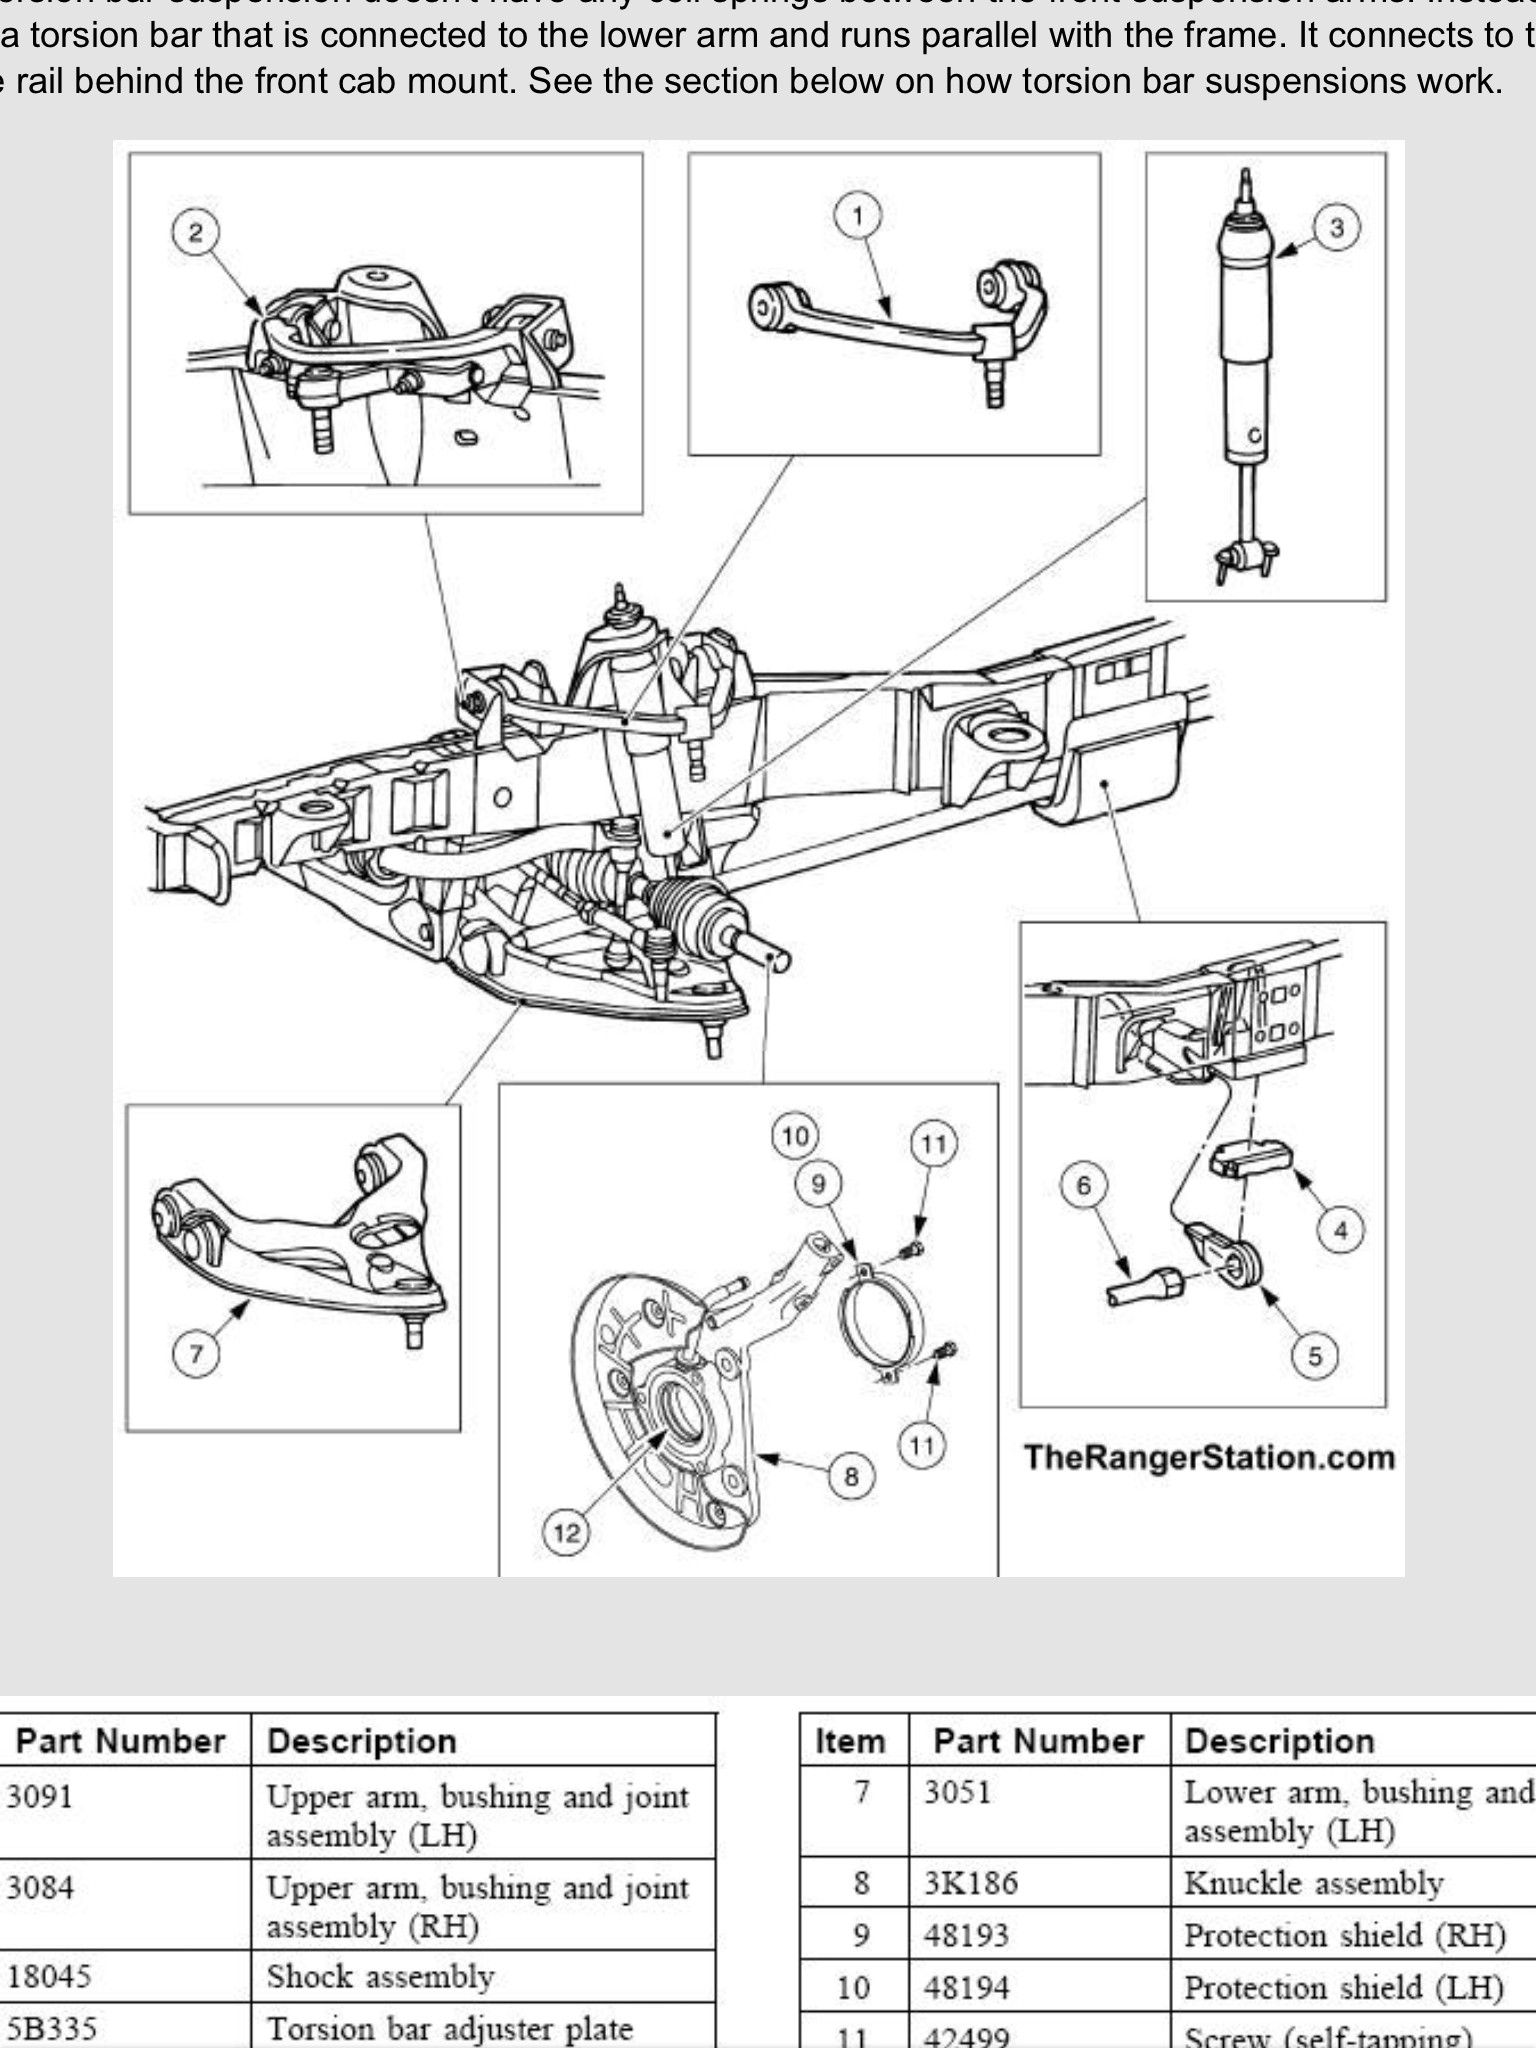 Steering and Suspension Diagram Pin by Tedja Alvin On Serba Serbi Mesin Of Steering and Suspension Diagram Ge Model Gban2800f0ww Residential Washers Genuine Parts